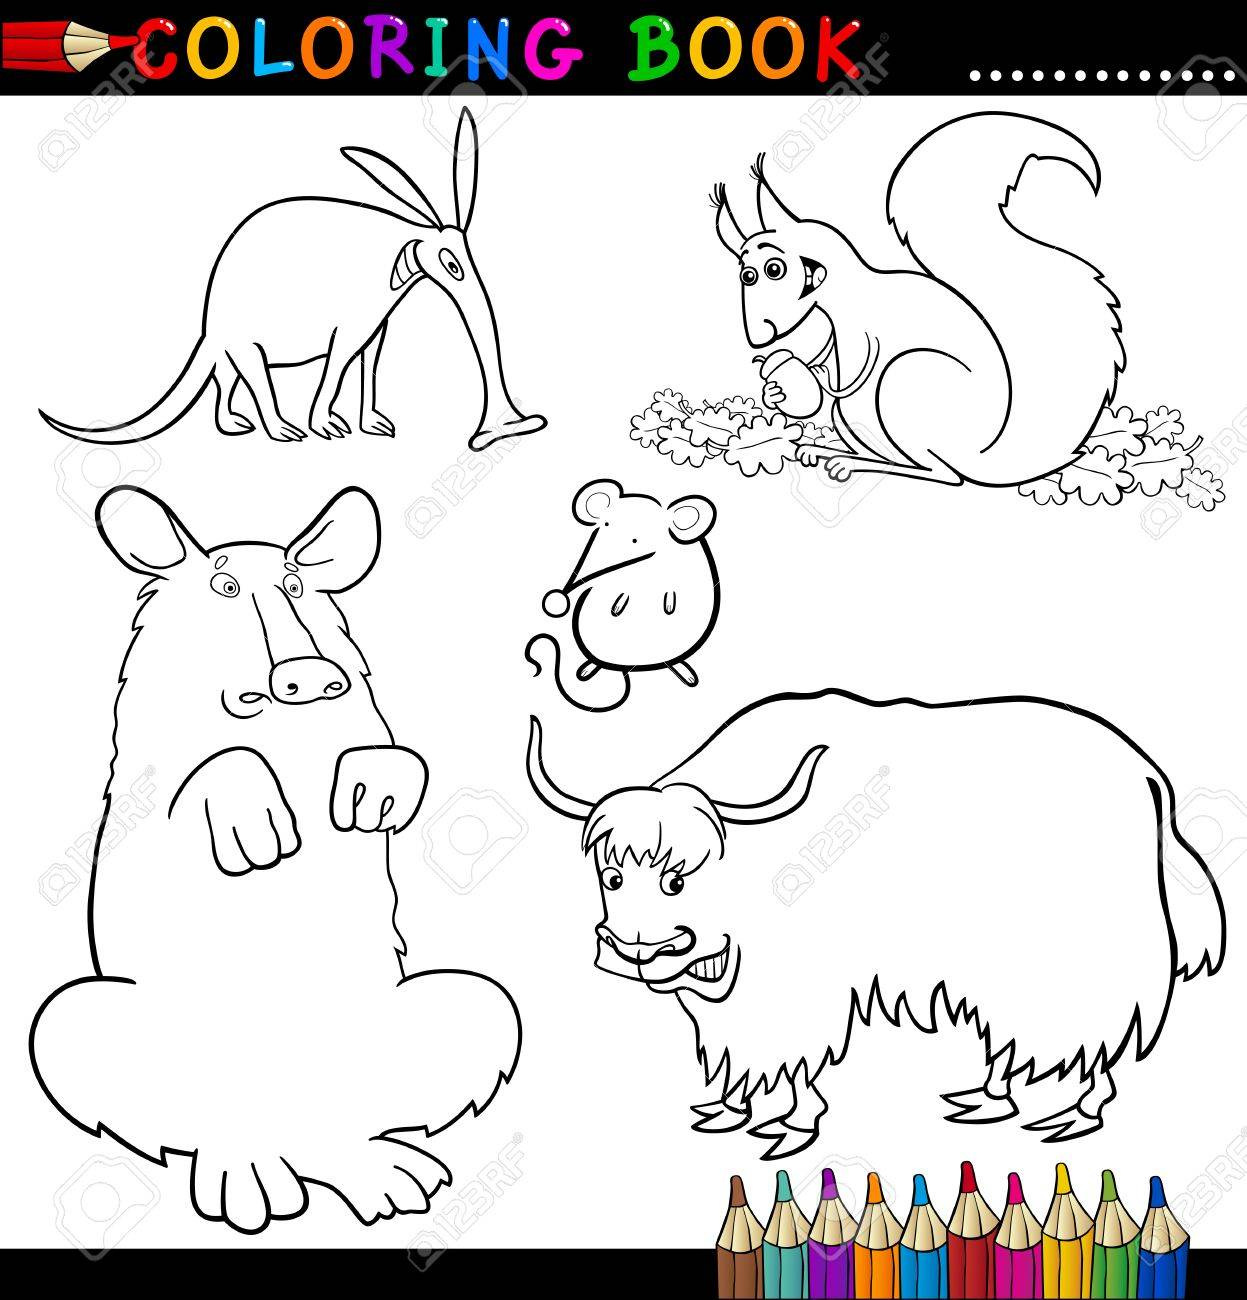 Coloring Book Or Page Cartoon Illustration Of Funny Wild Animals - aardvark animal coloring pages